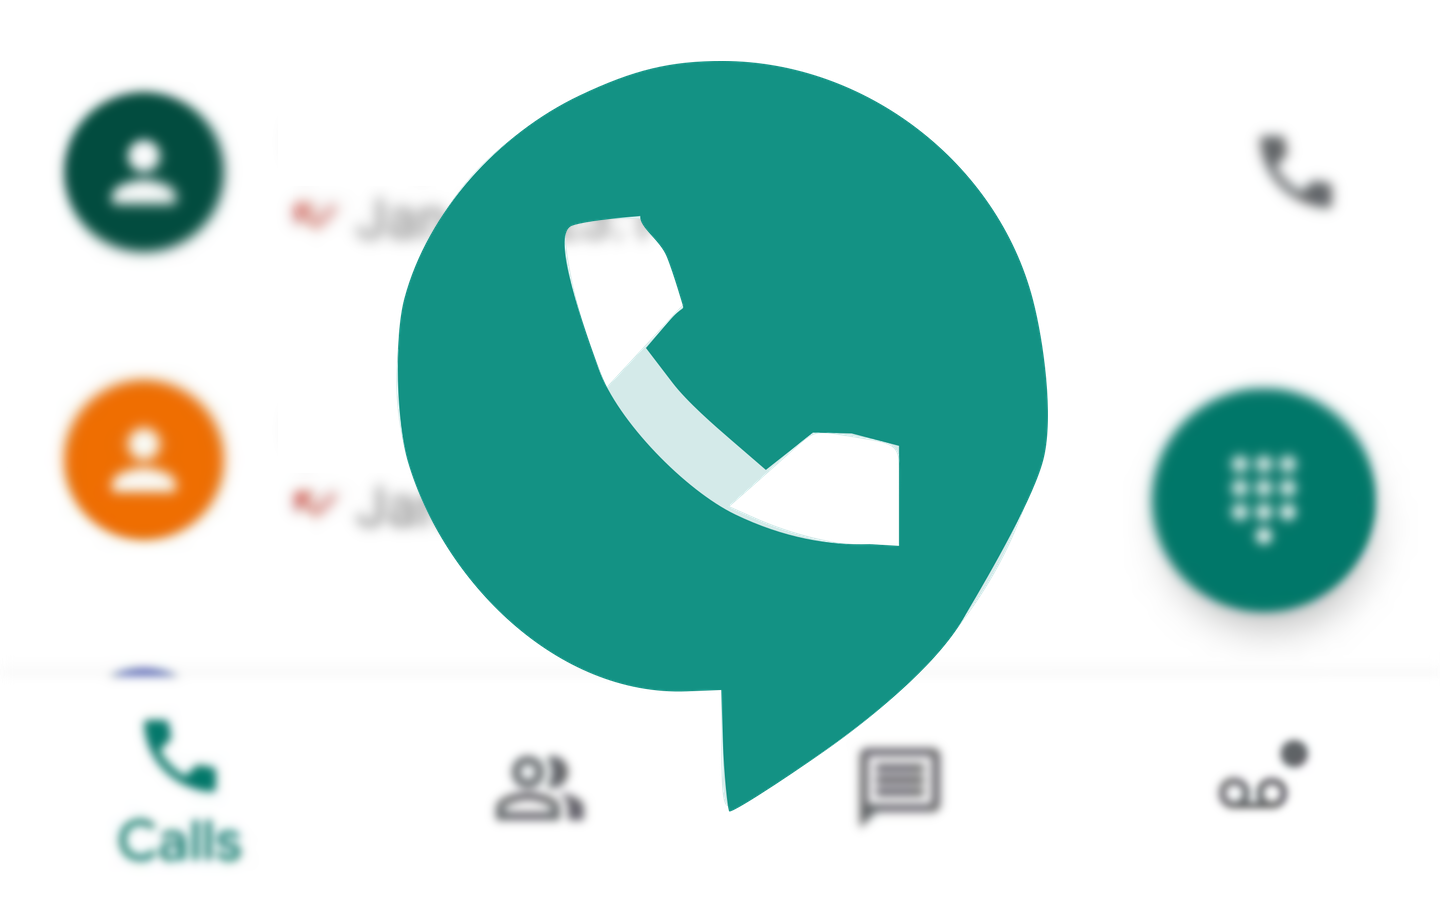 Update: New version available, APK download] Google Voice